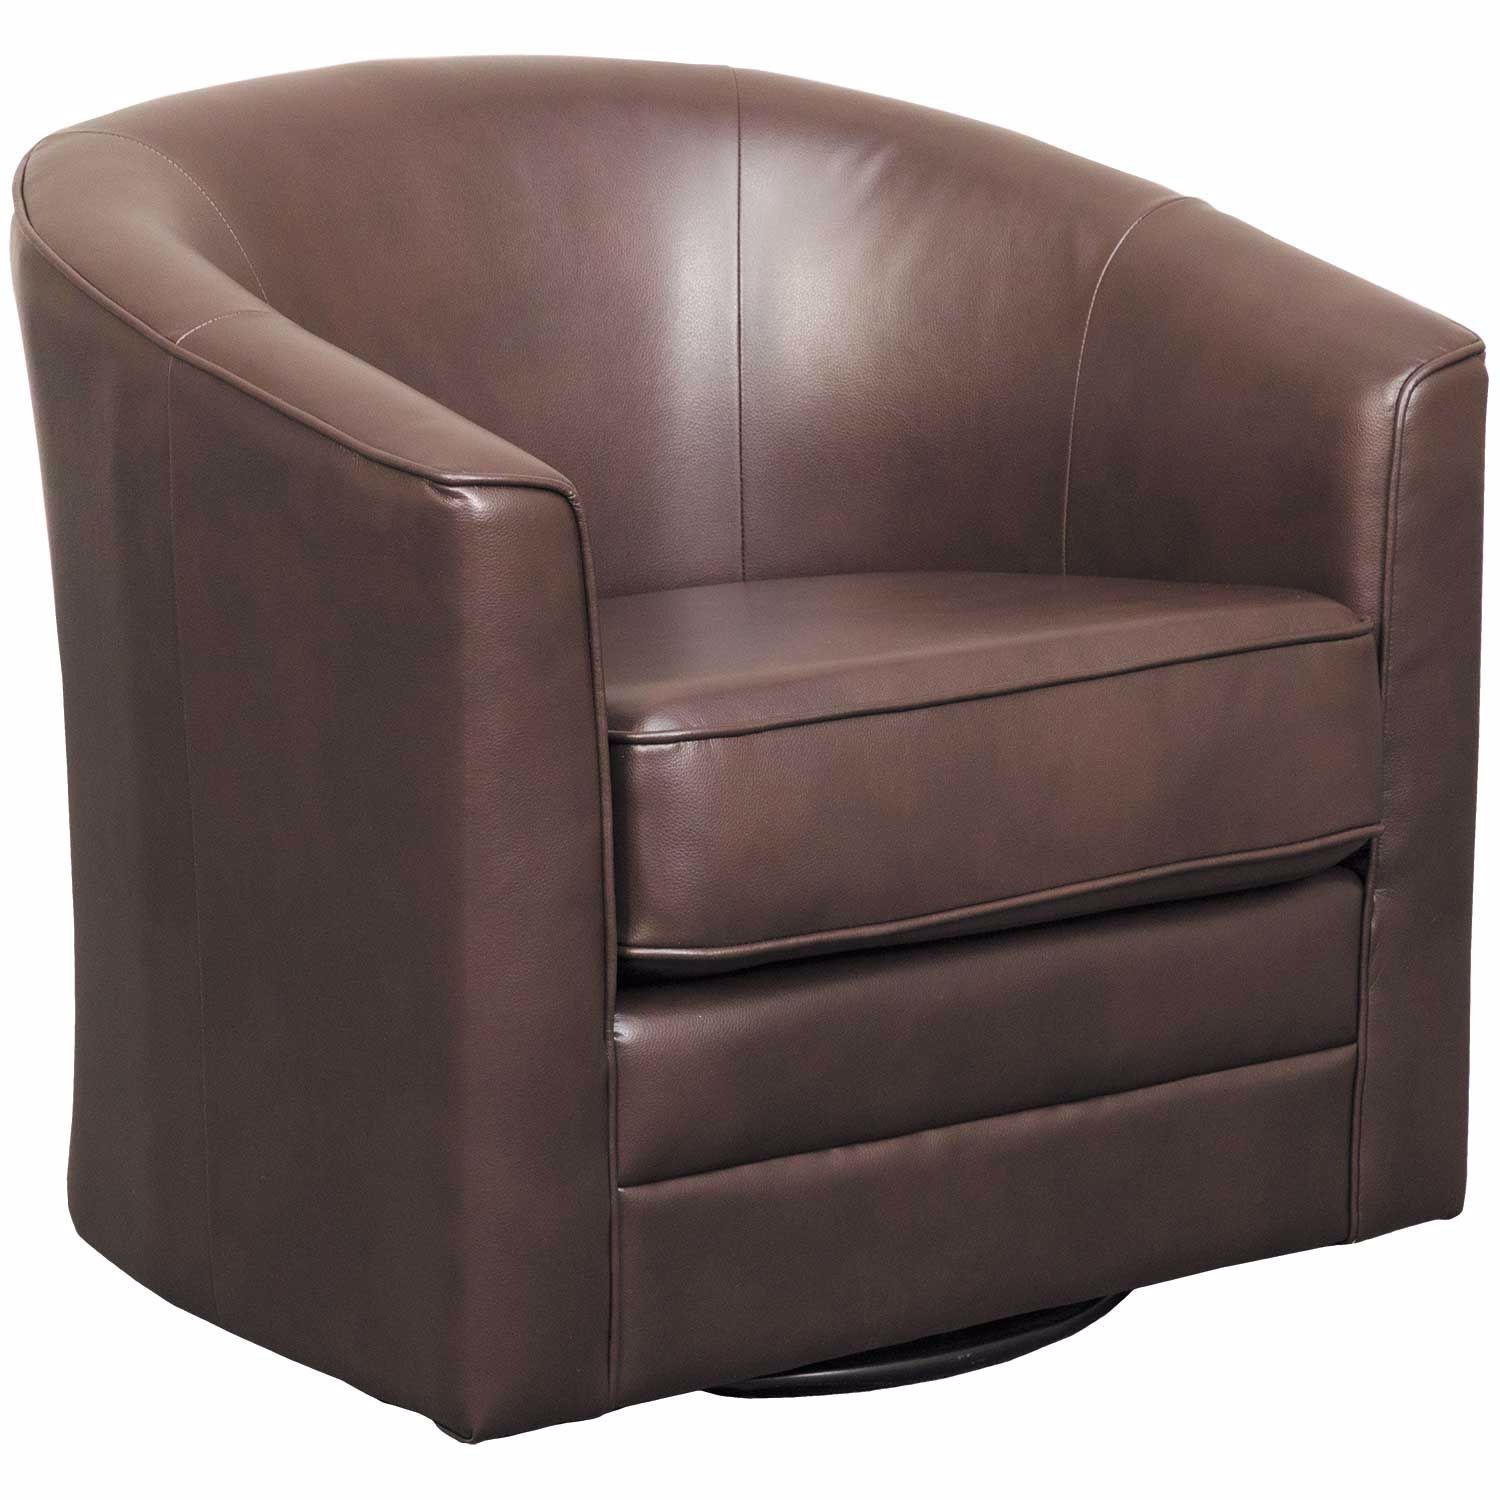 Grayson Chocolate Swivel Chair